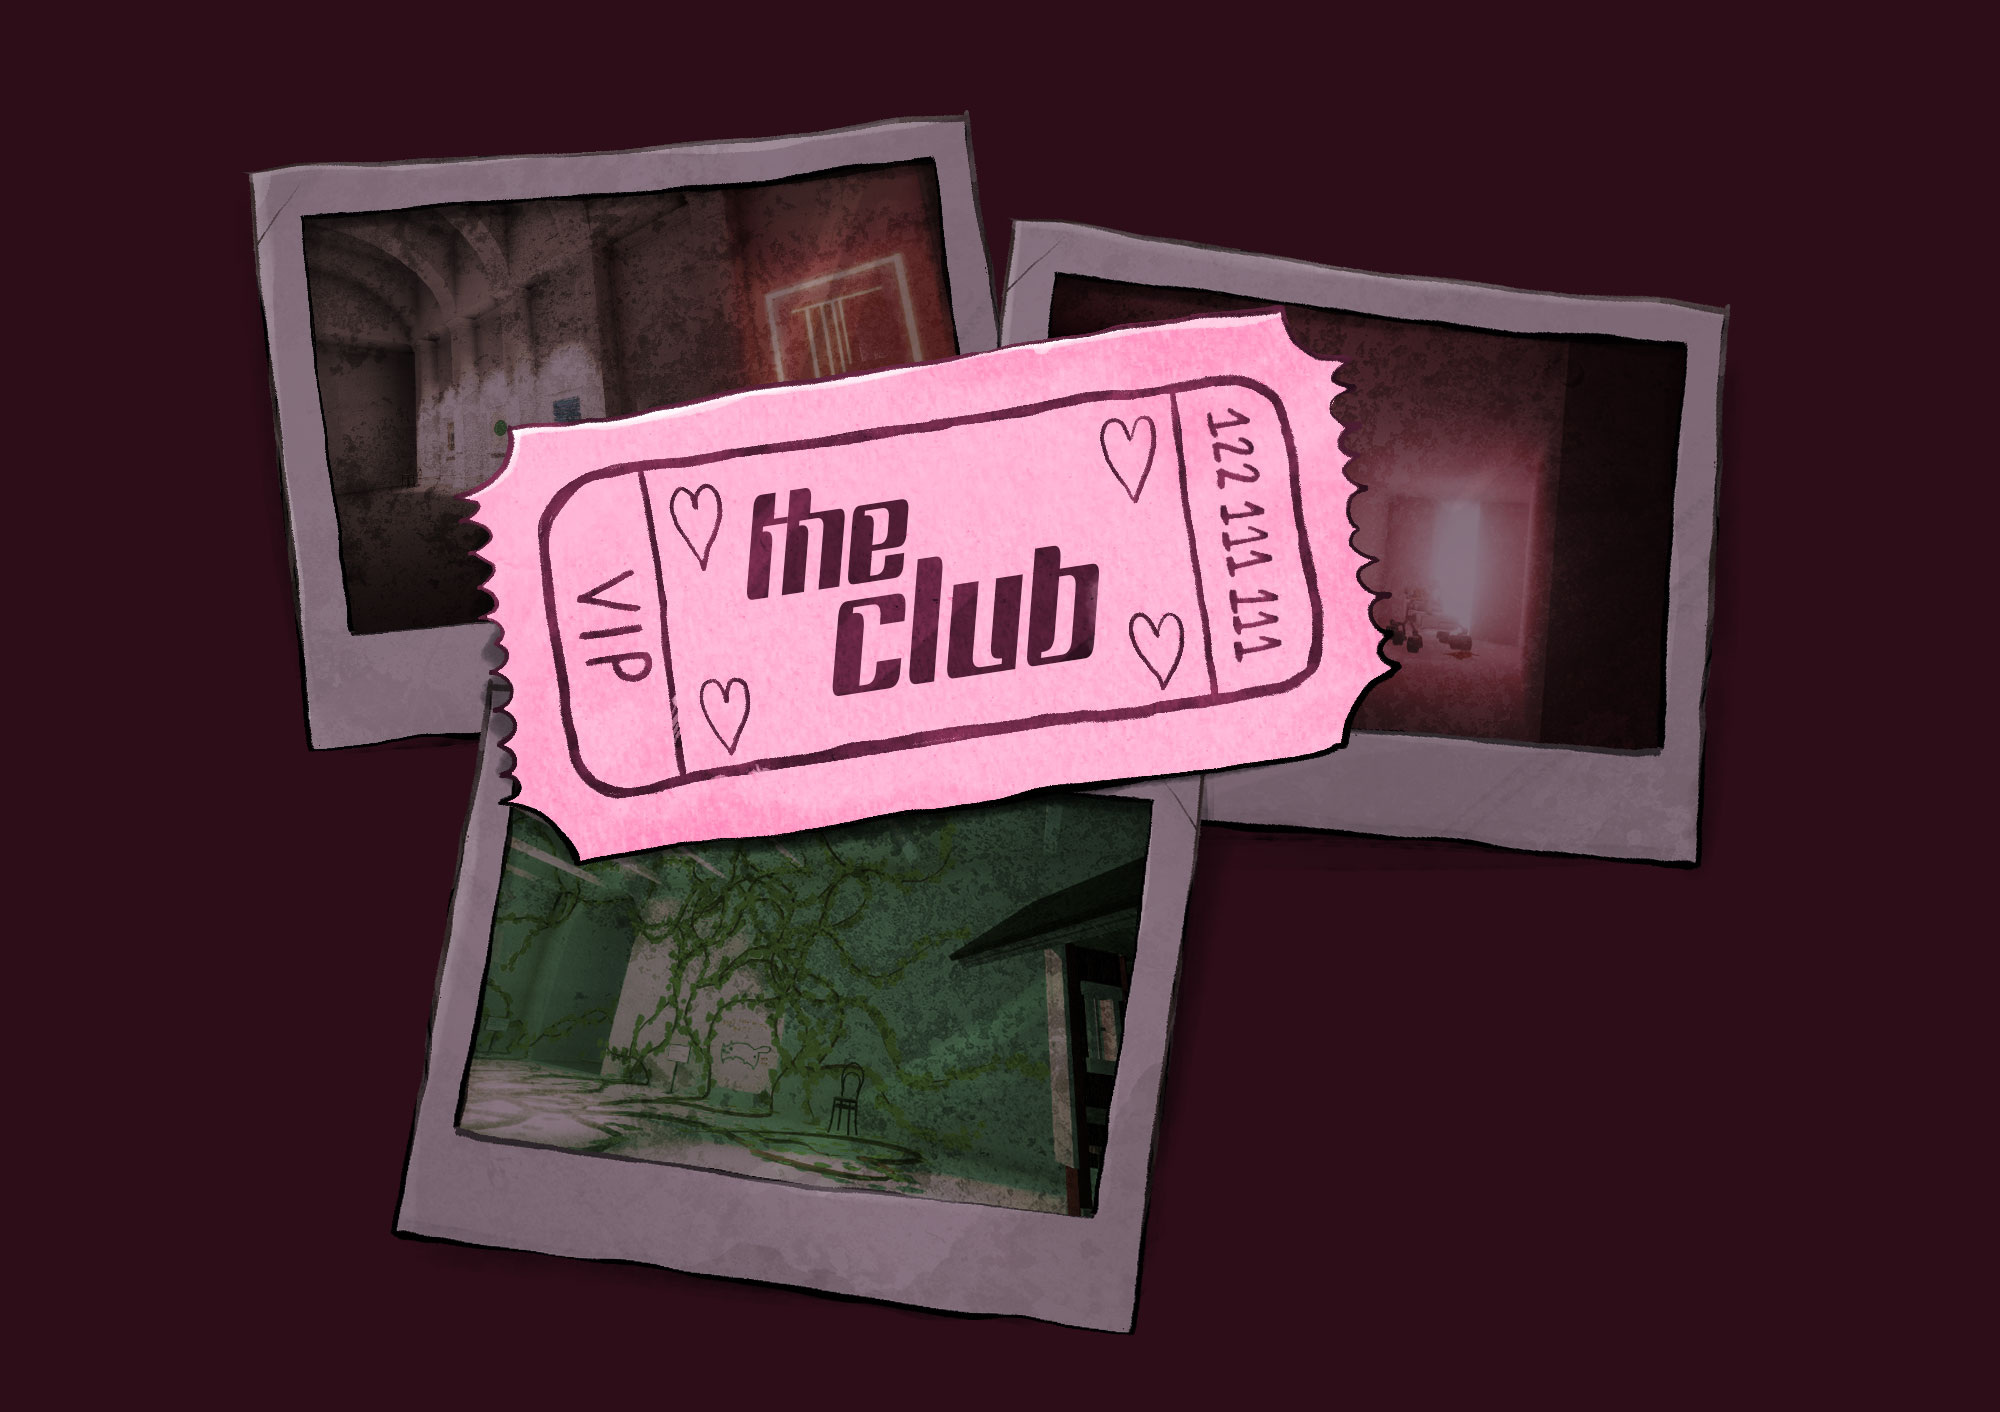 Your ticket to THE CLUB